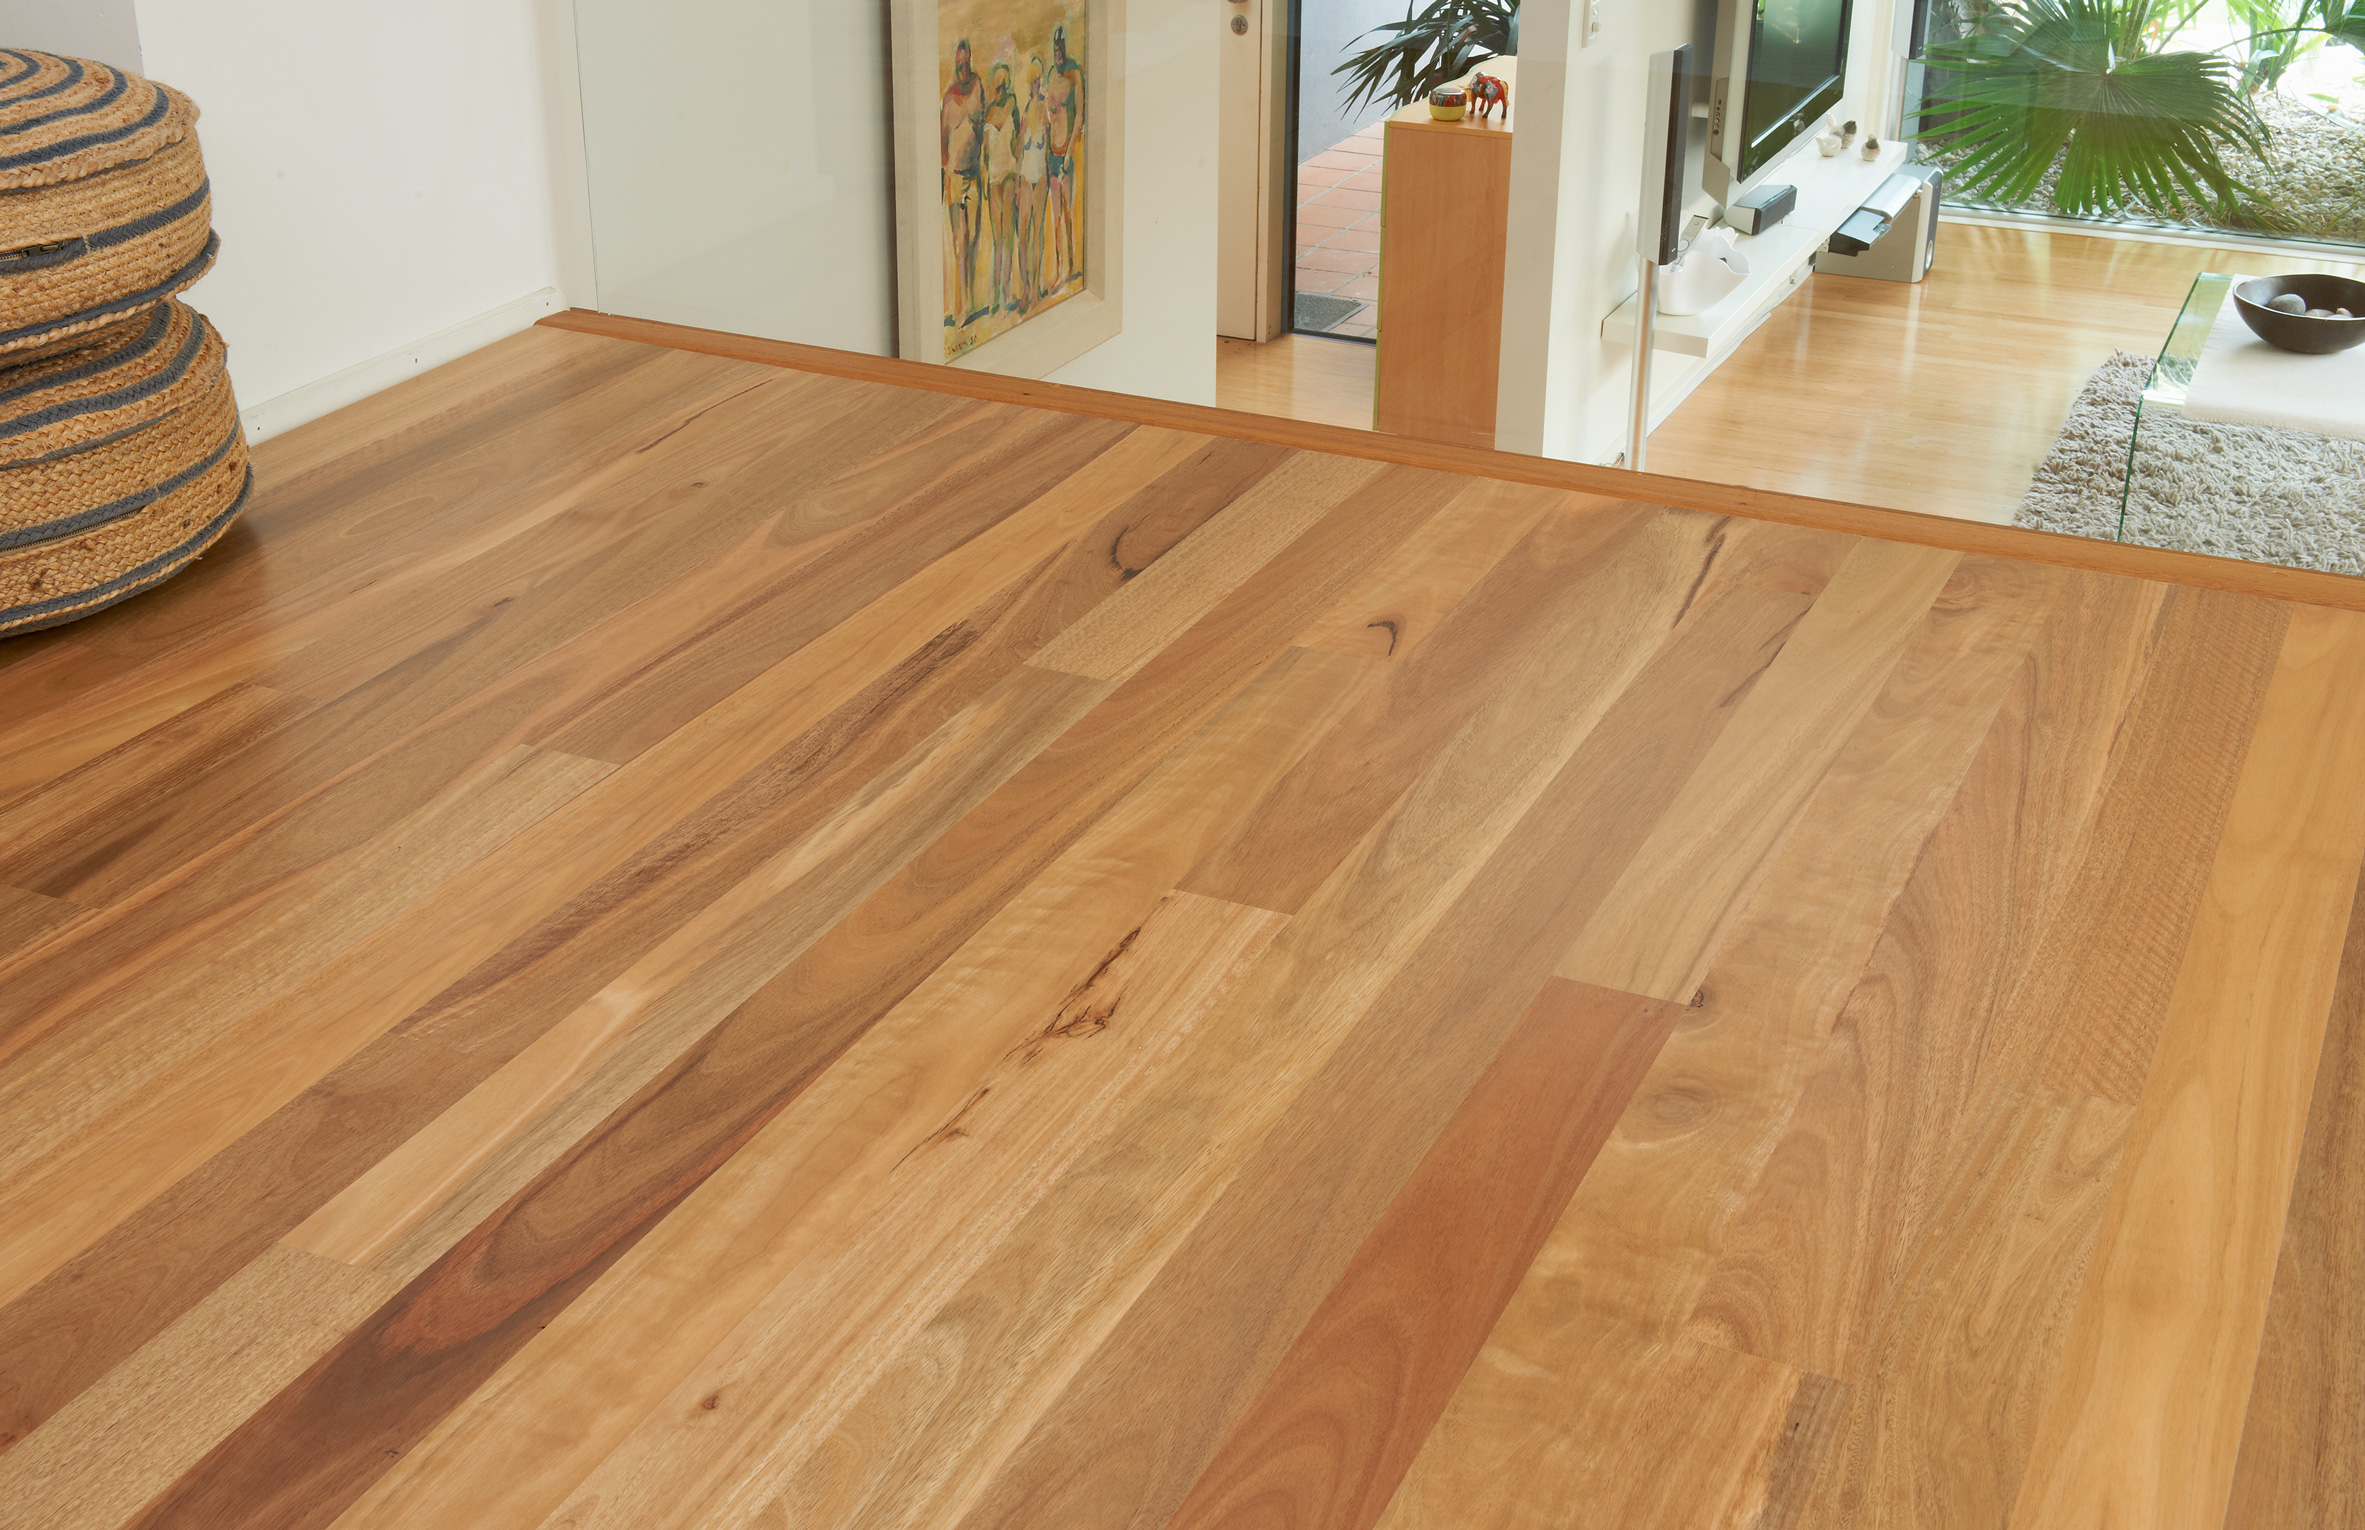 Spotted gum ecorymbia maculata gloria timber flooring for Timber flooring